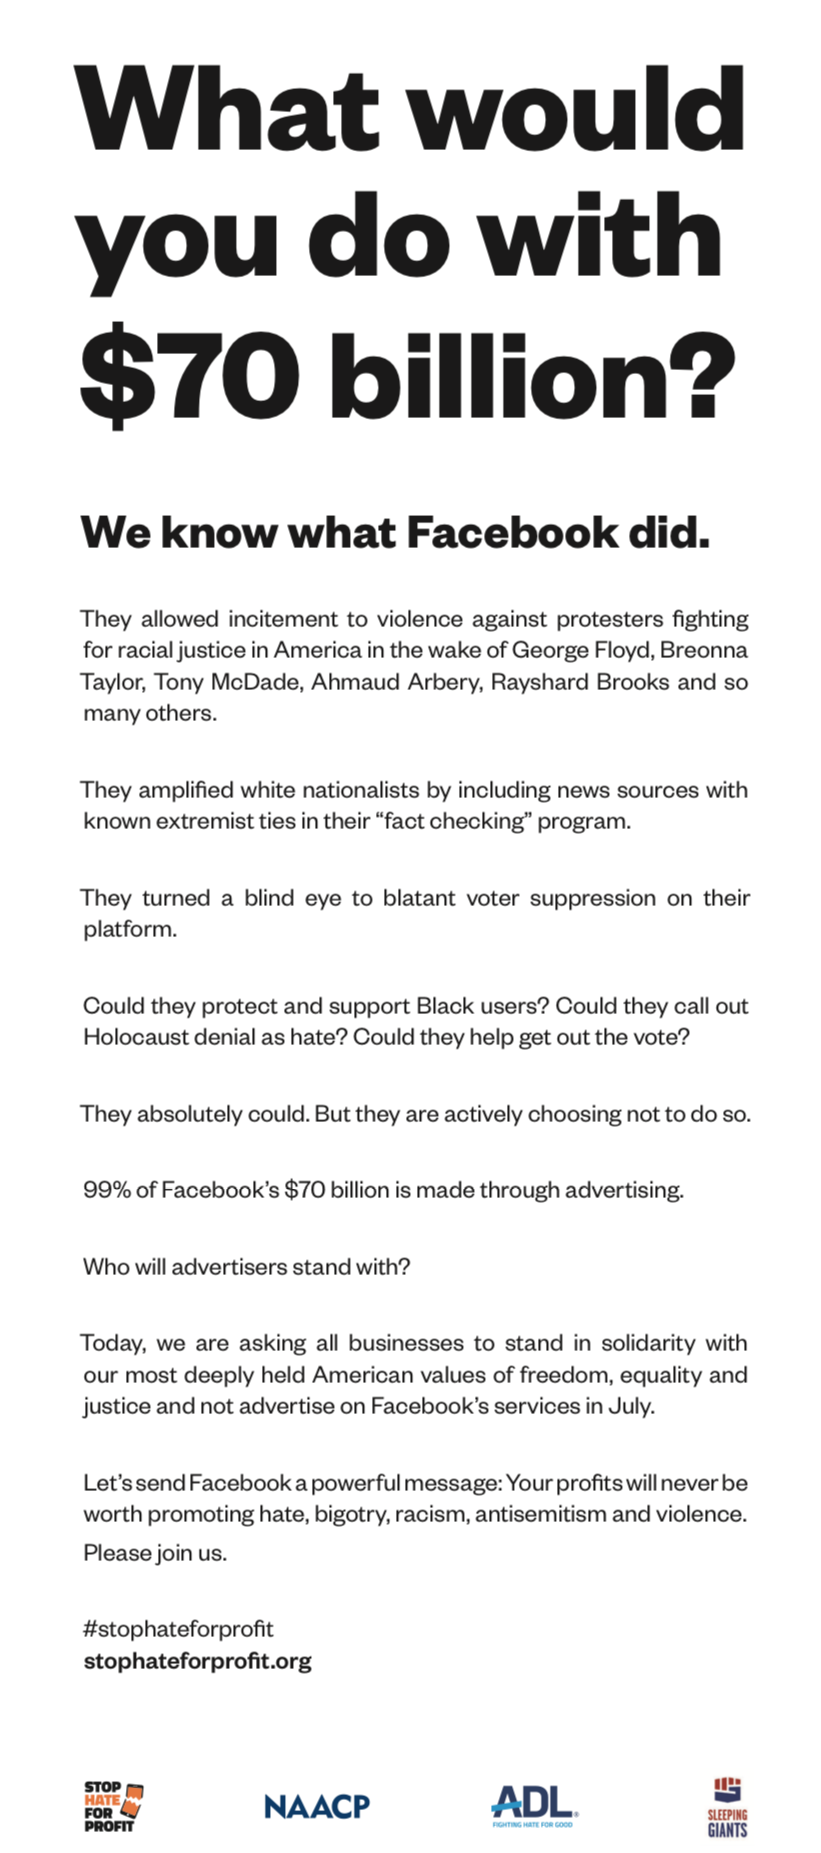 Solidarity - Facebook Ads Promoting Hate Graphic